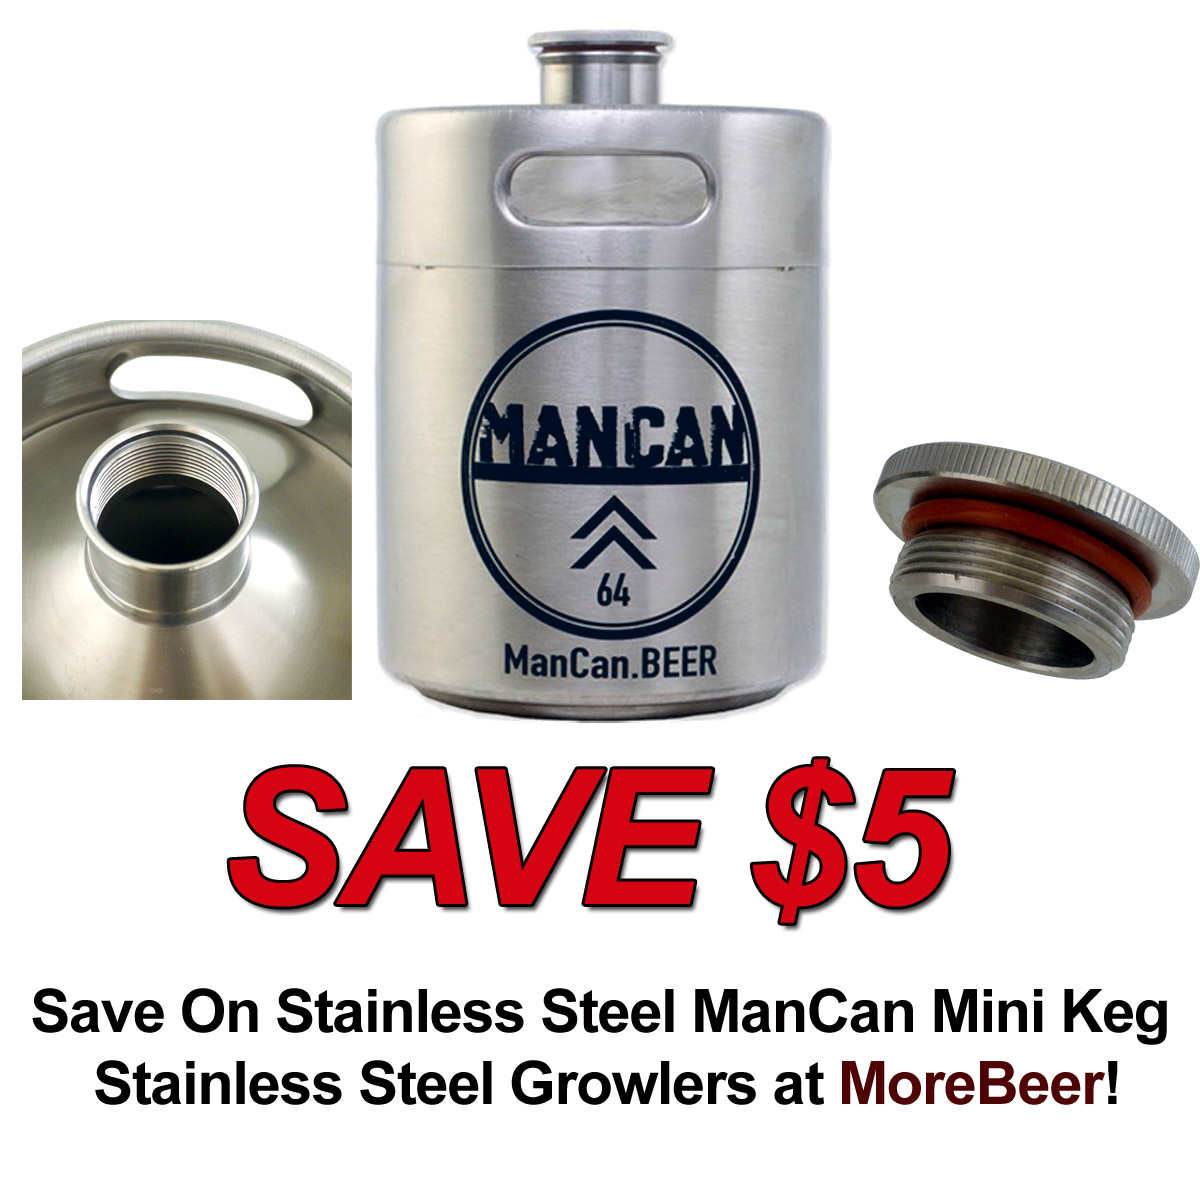 Home Brewer Promo Code for Save $5 On a Stainless Steel ManCan Mini Keg Growler Coupon Code